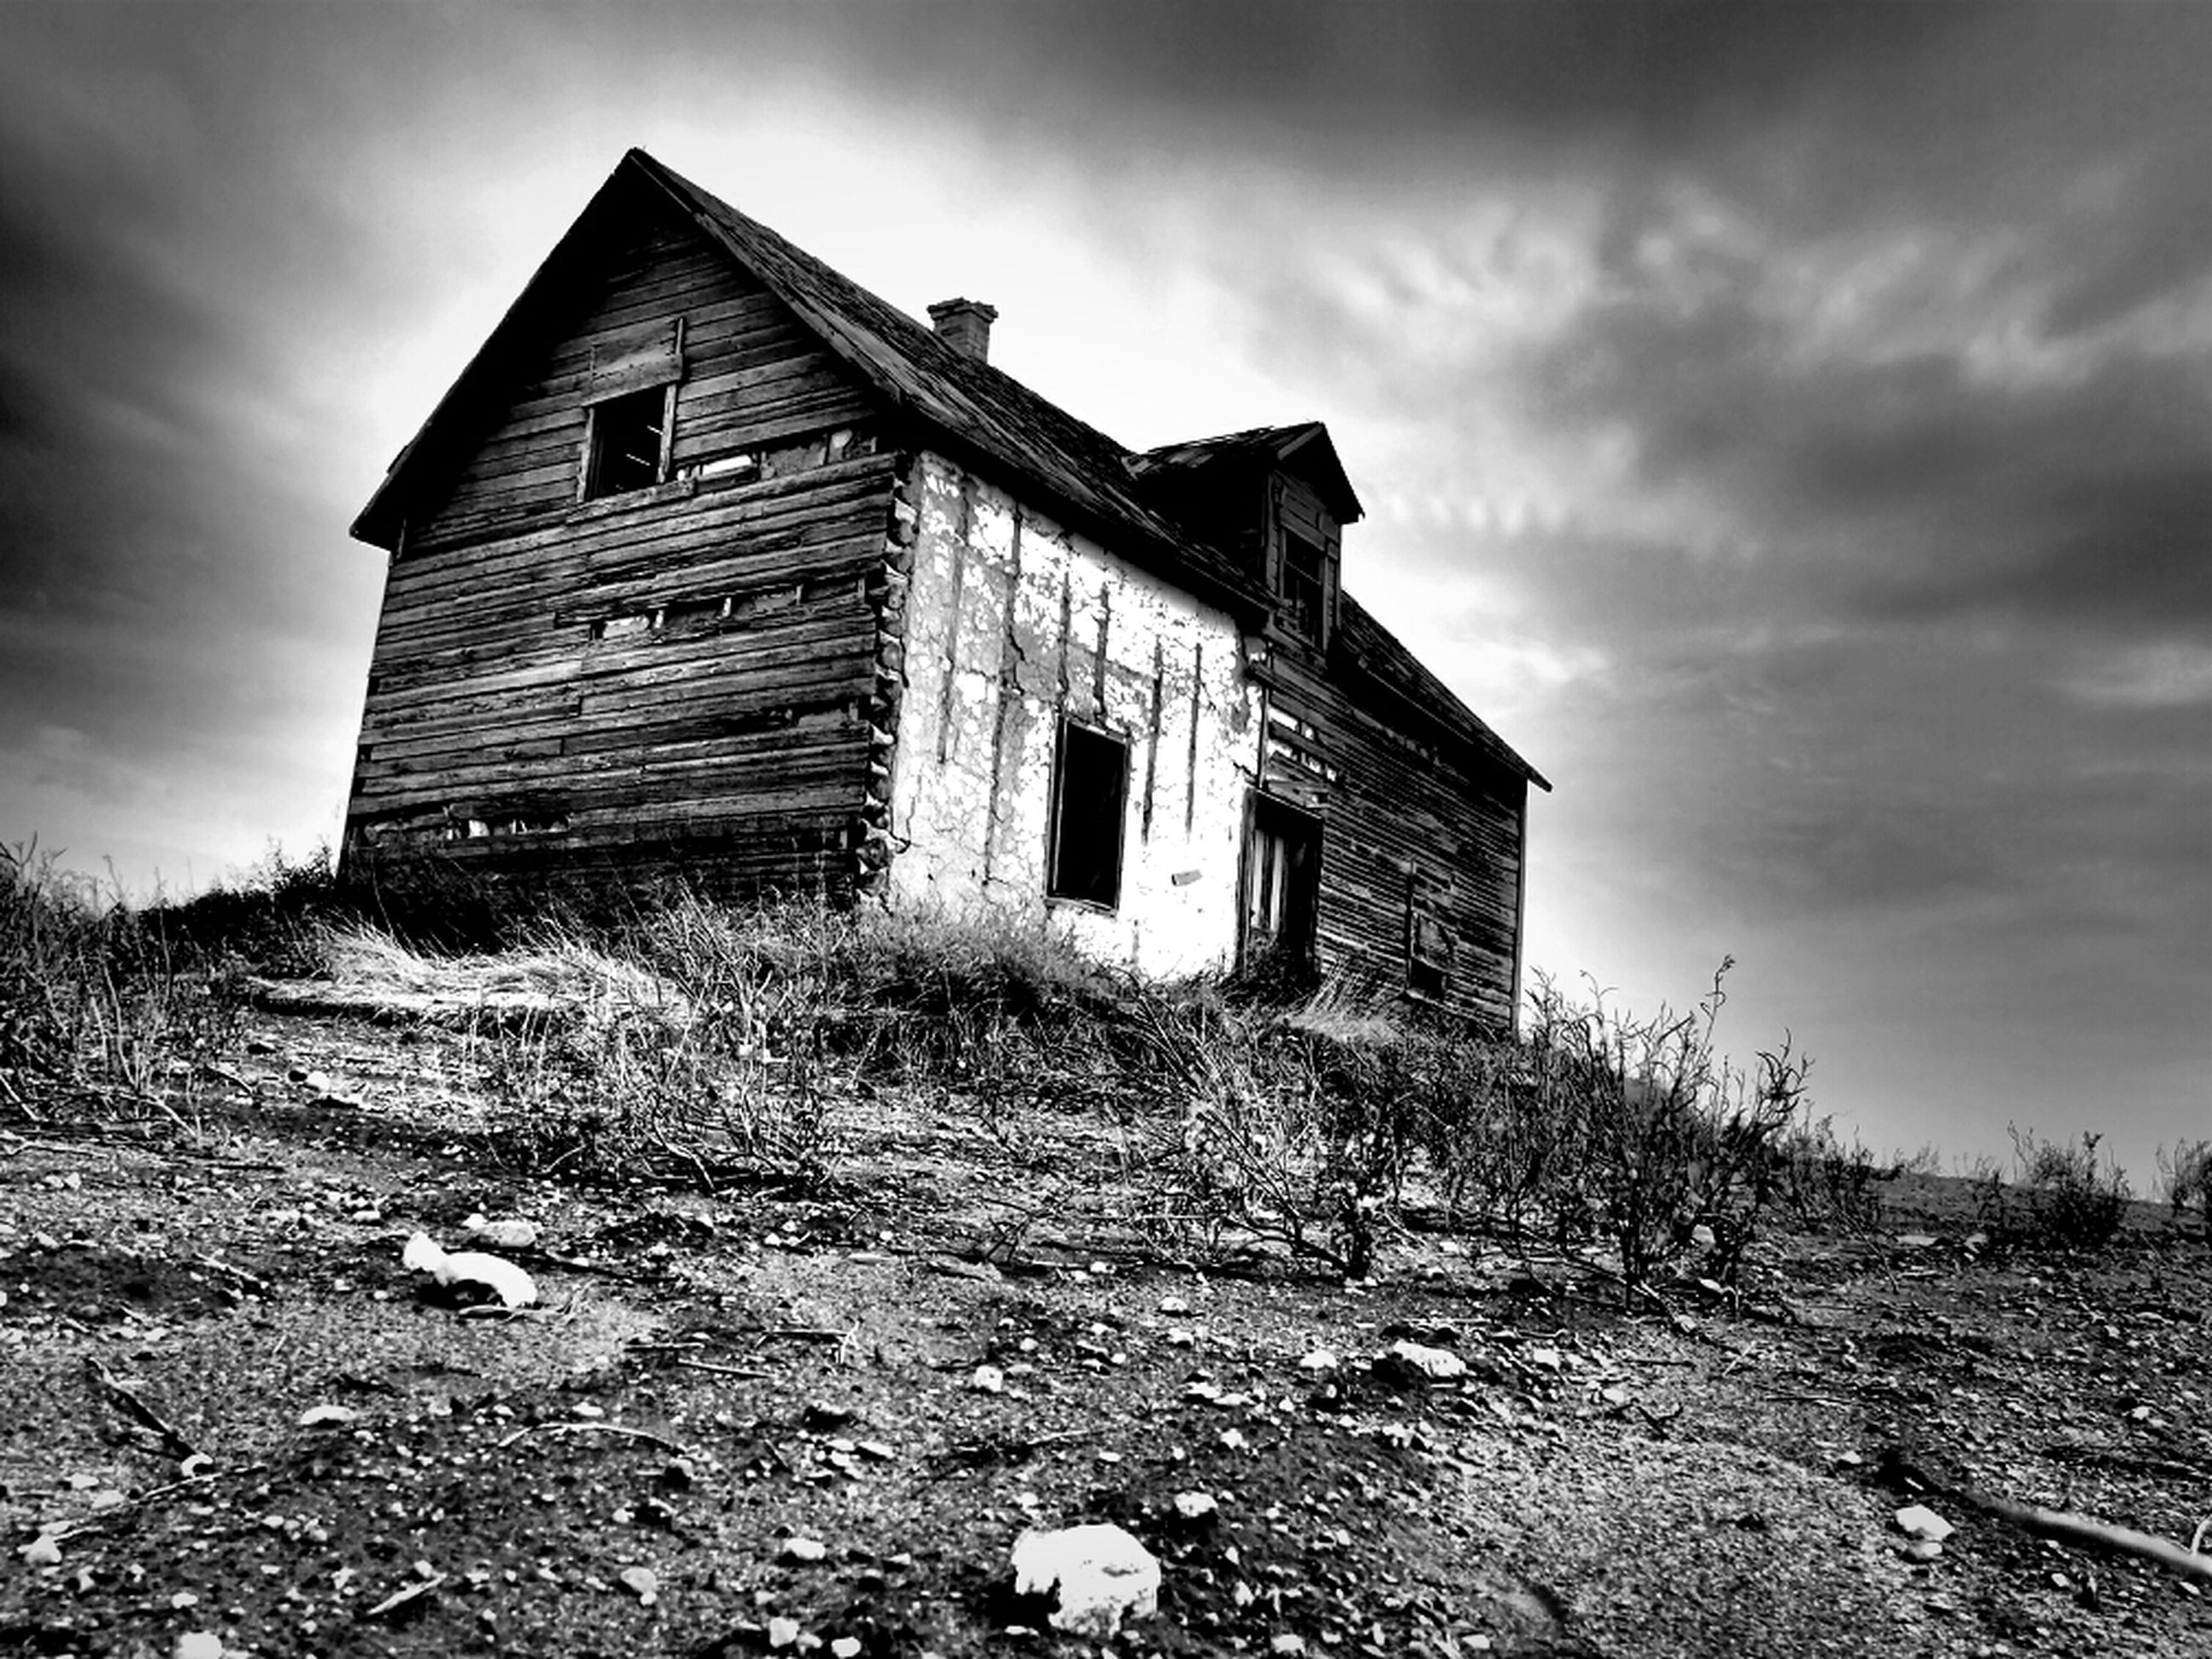 architecture, built structure, building exterior, sky, abandoned, cloud - sky, house, damaged, old, cloudy, field, obsolete, run-down, cloud, deterioration, day, grass, low angle view, no people, outdoors